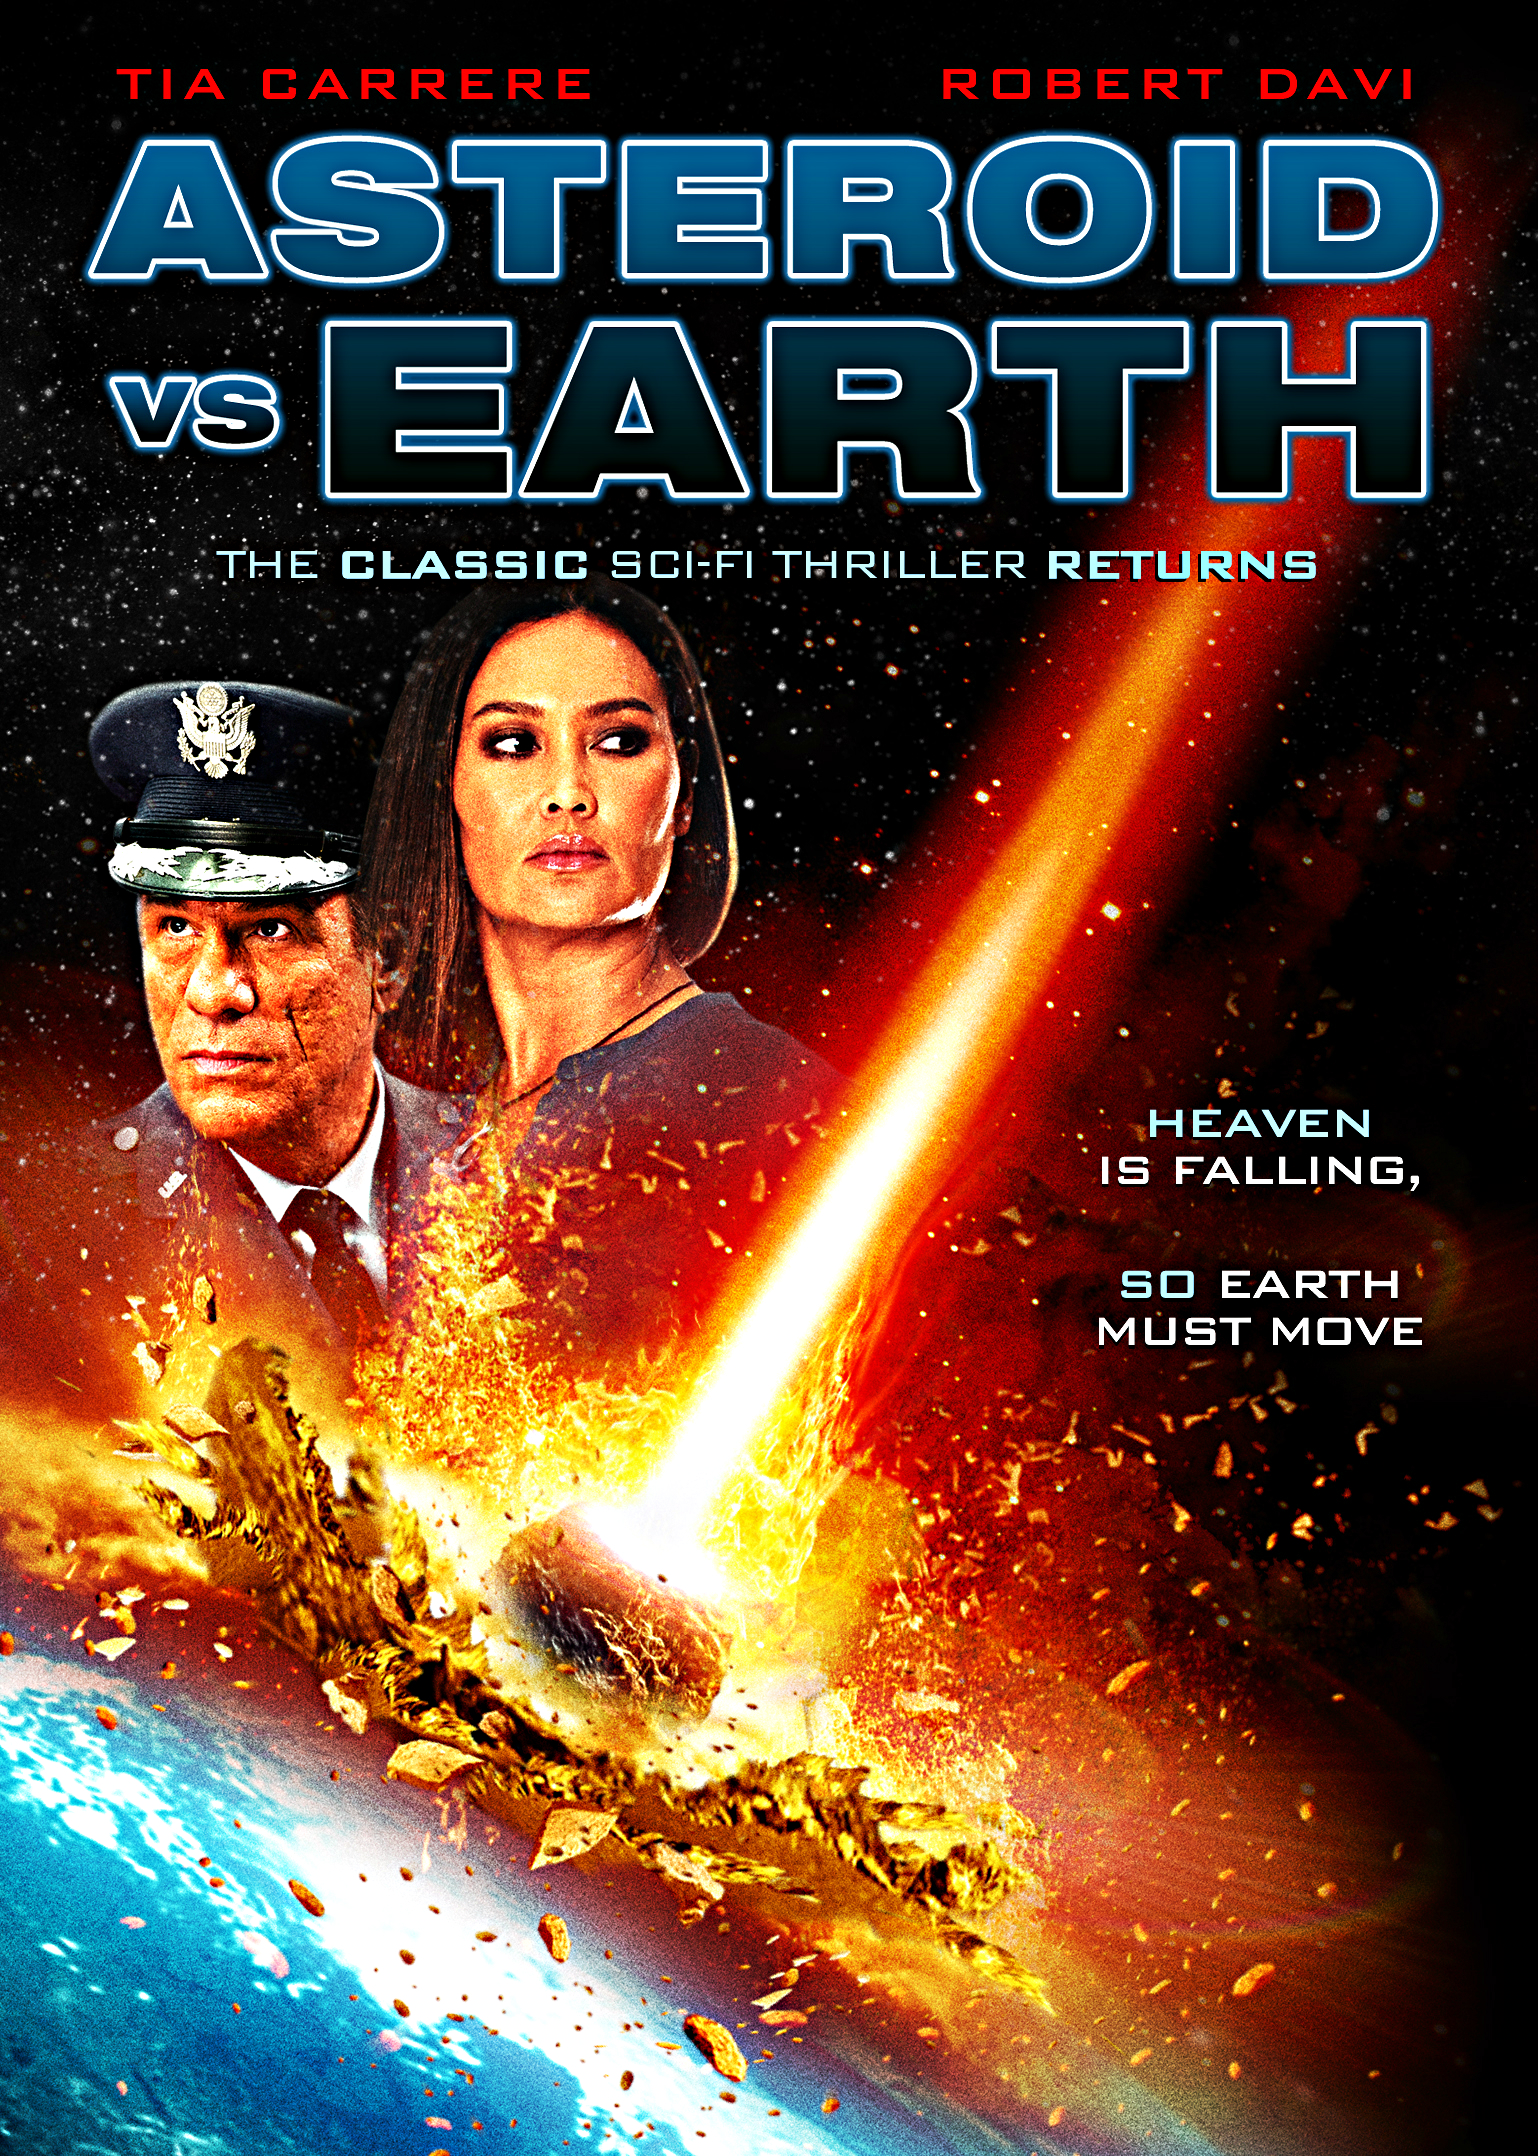 """<p>Official movie poster for """"Asteroid vs. Earth"""" released by The Asylum.</p>"""